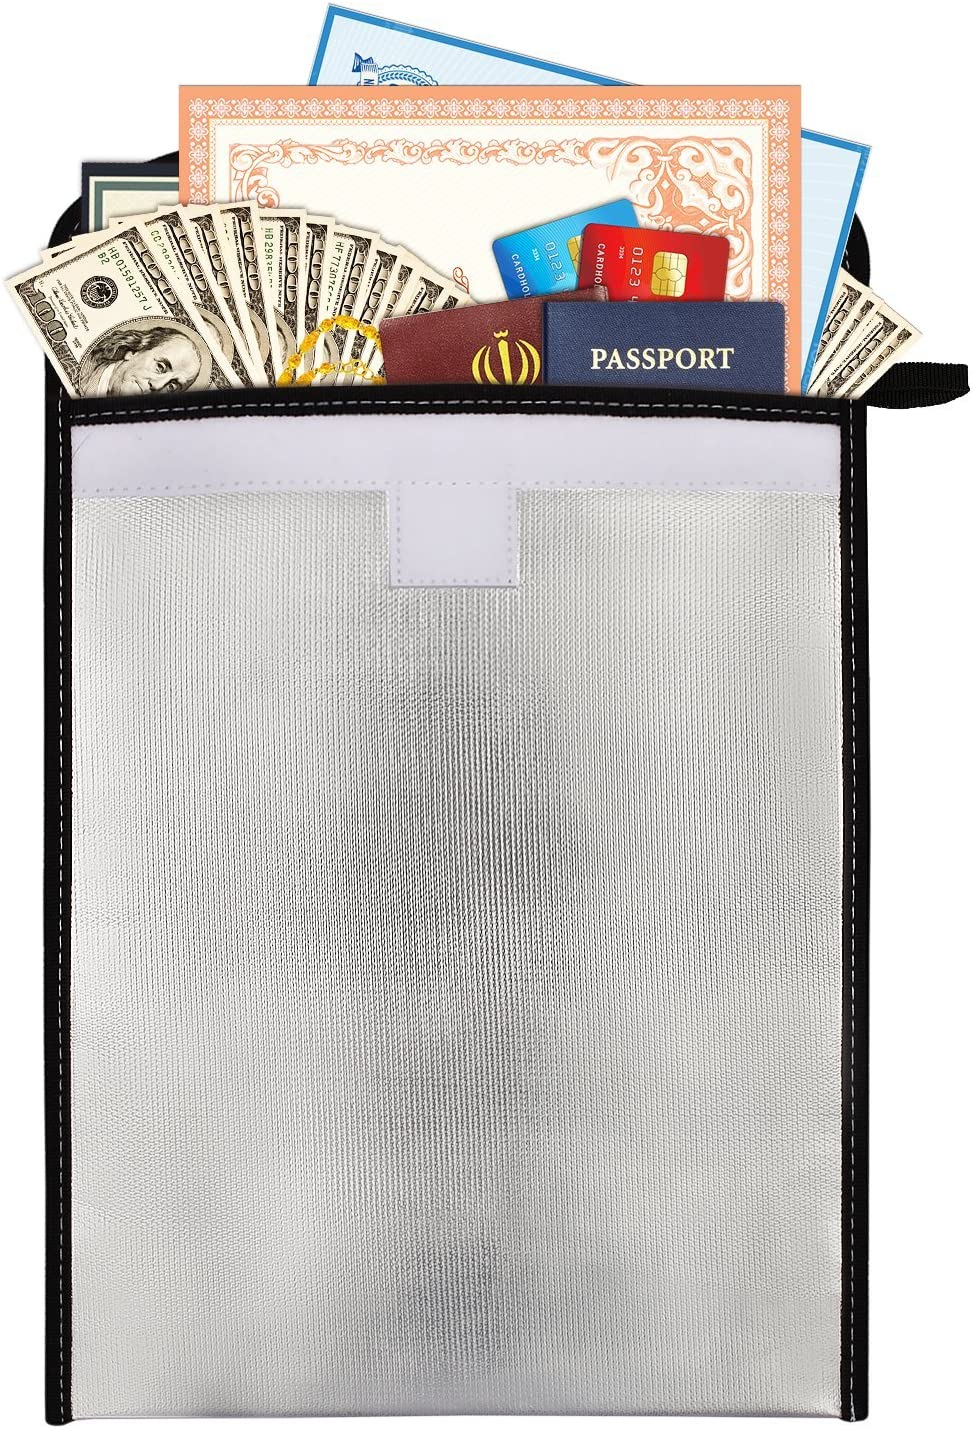 Fireproof Bag A4 Document Bag Water Resistant Storage Pouch NON-ITCHY Fiberglass Protective Case for Documents Passport Cash Bills Batteries Valuables